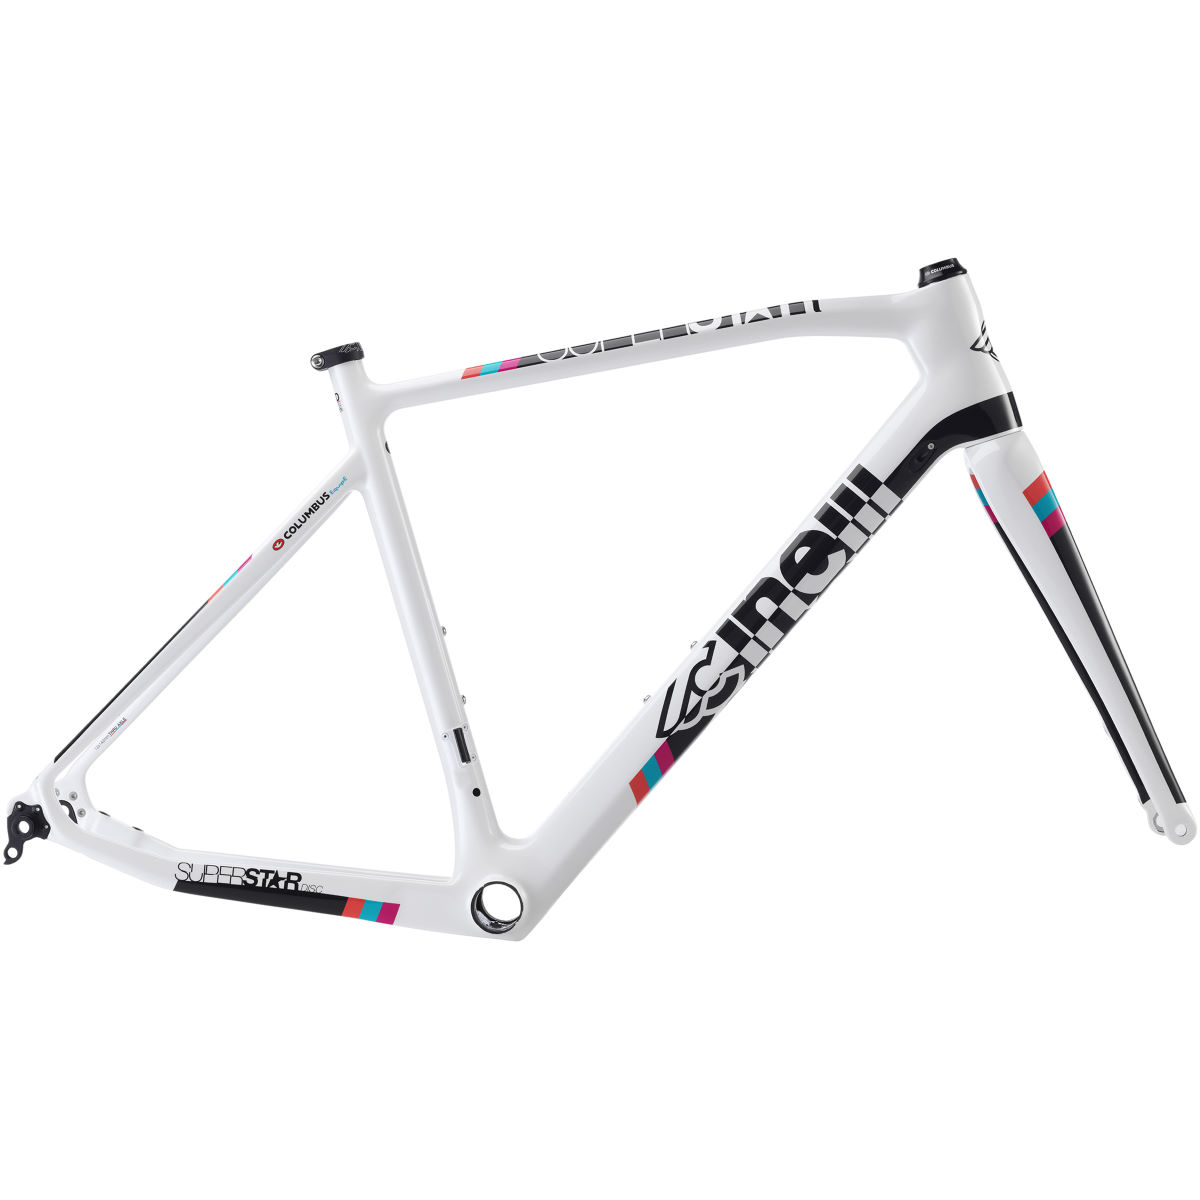 Cinelli Superstar Disc Frameset - Cuadros de carretera